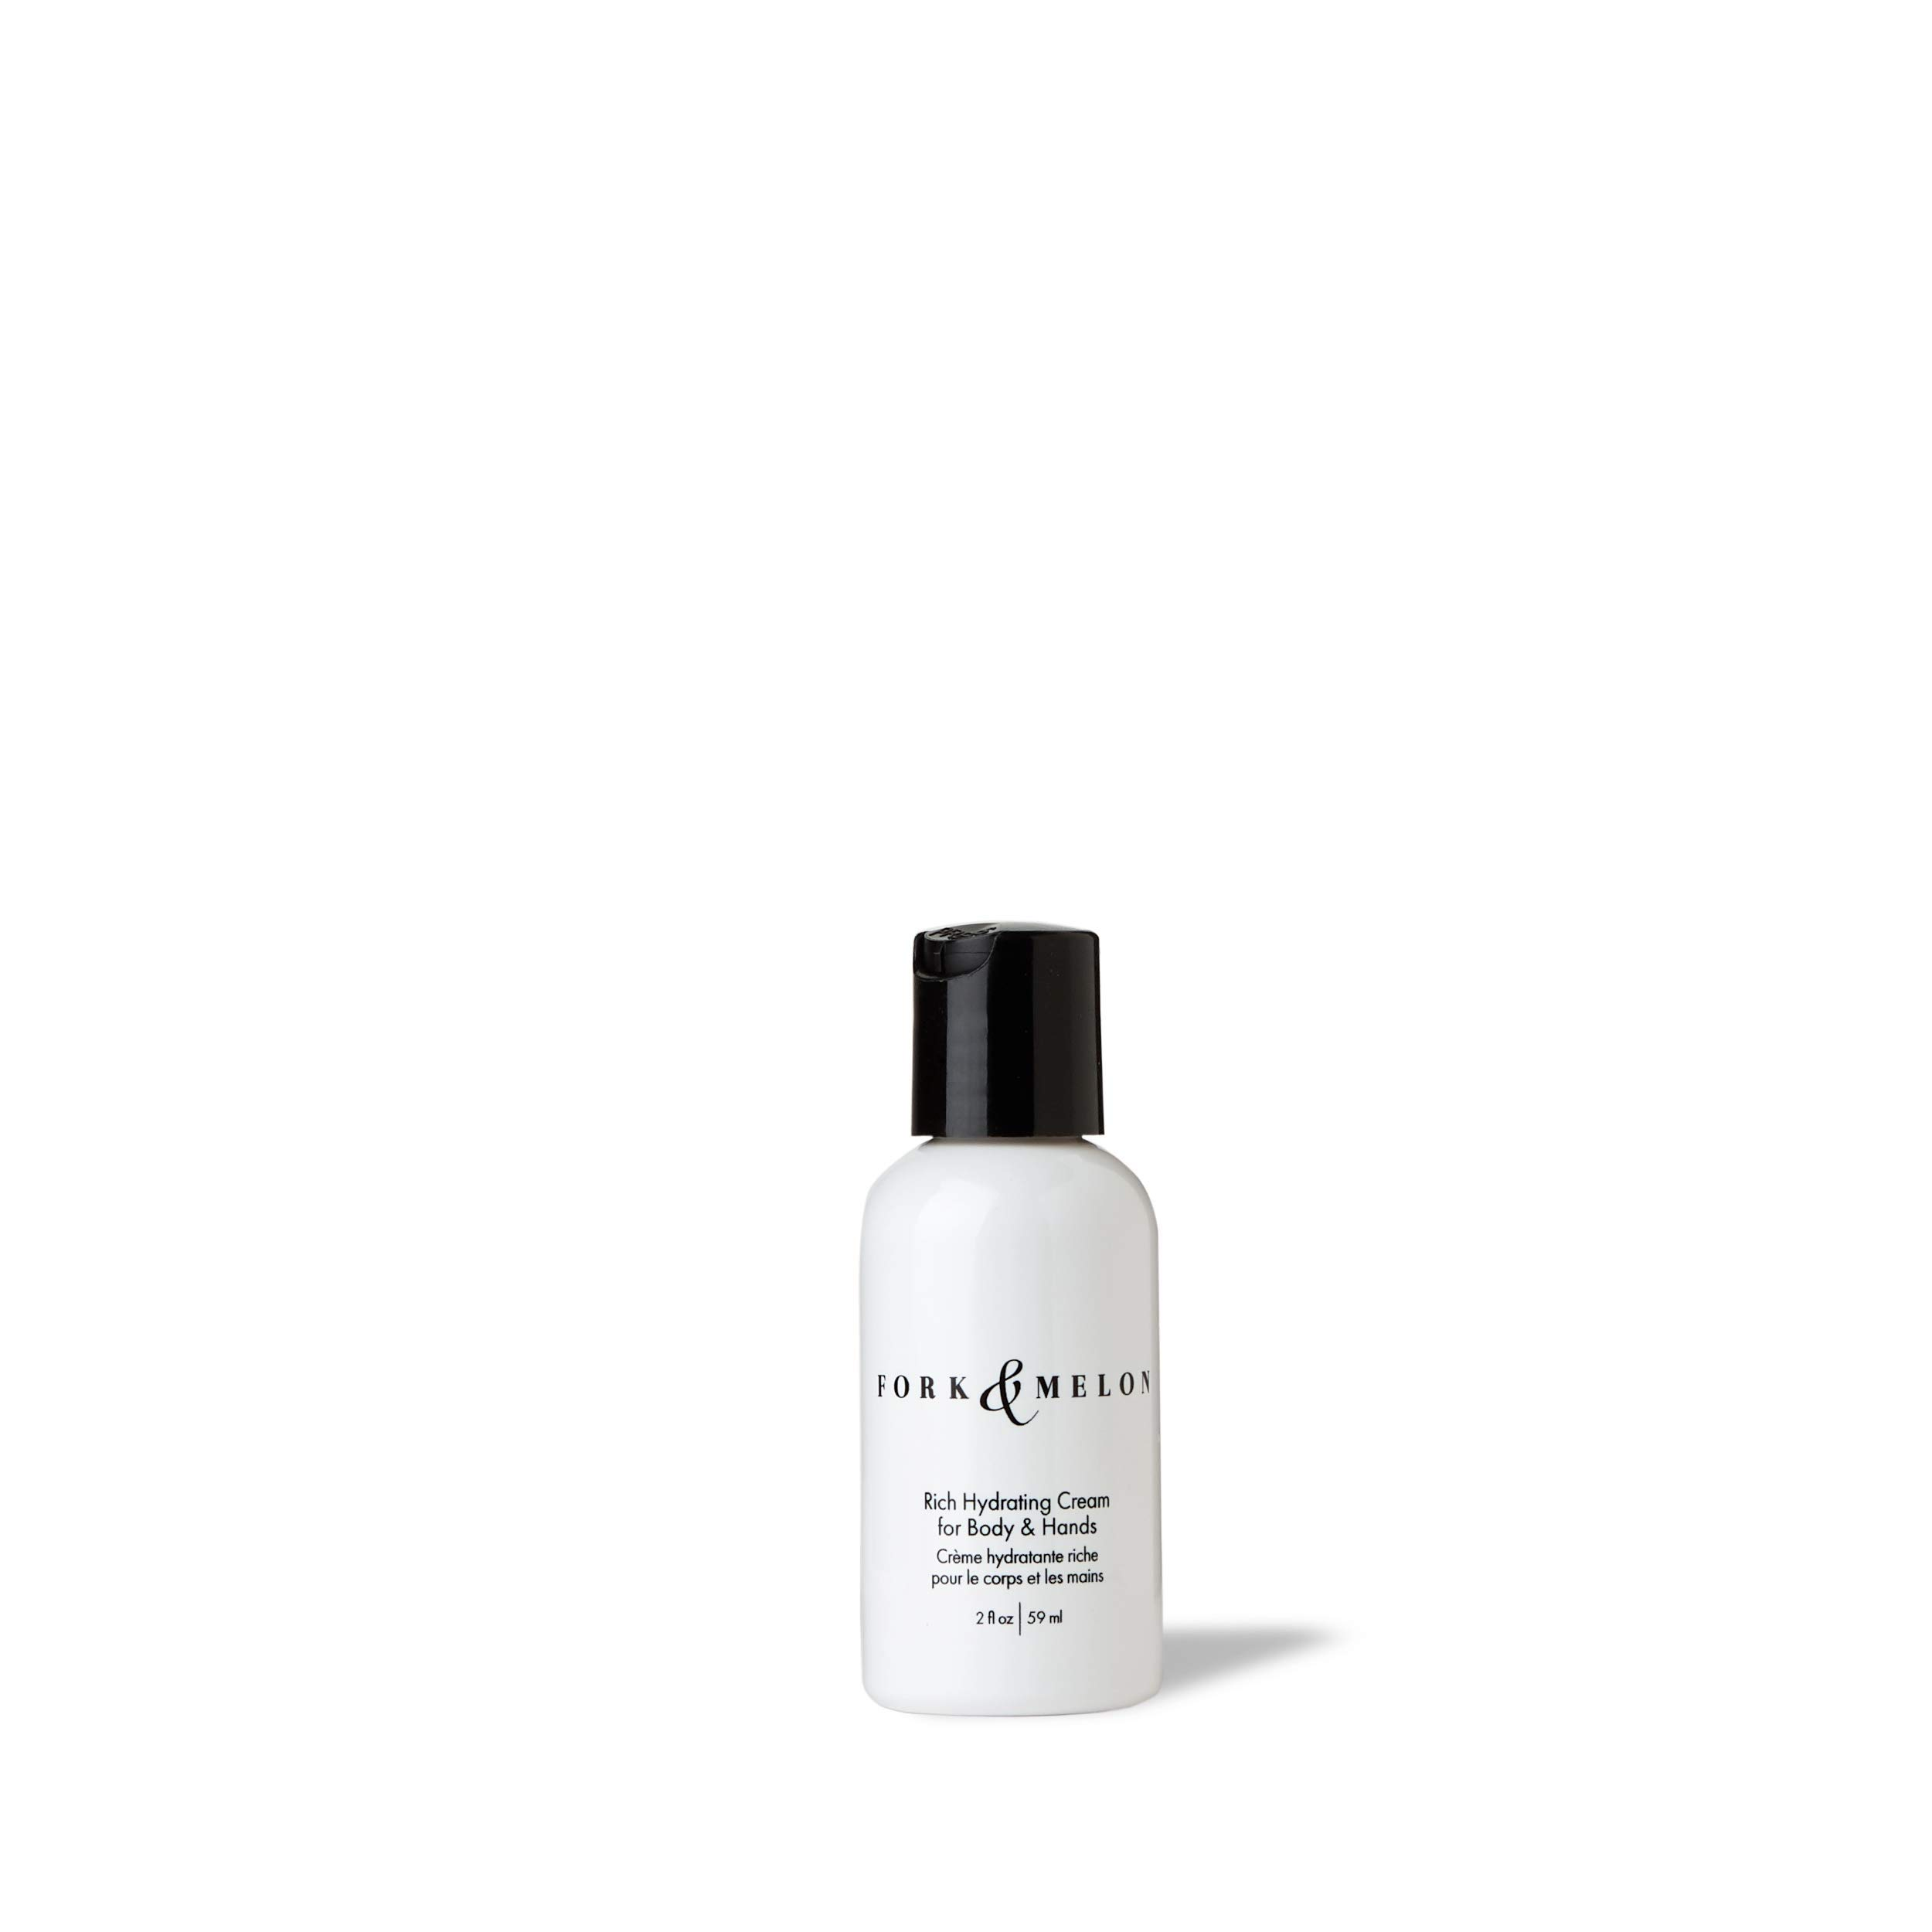 FORK & MELON Rich Hydrating Cream for Body & Hands (2oz) - Travel Size | TSA Approved | Organic Body Lotion | Best Lotion for Dry Hands